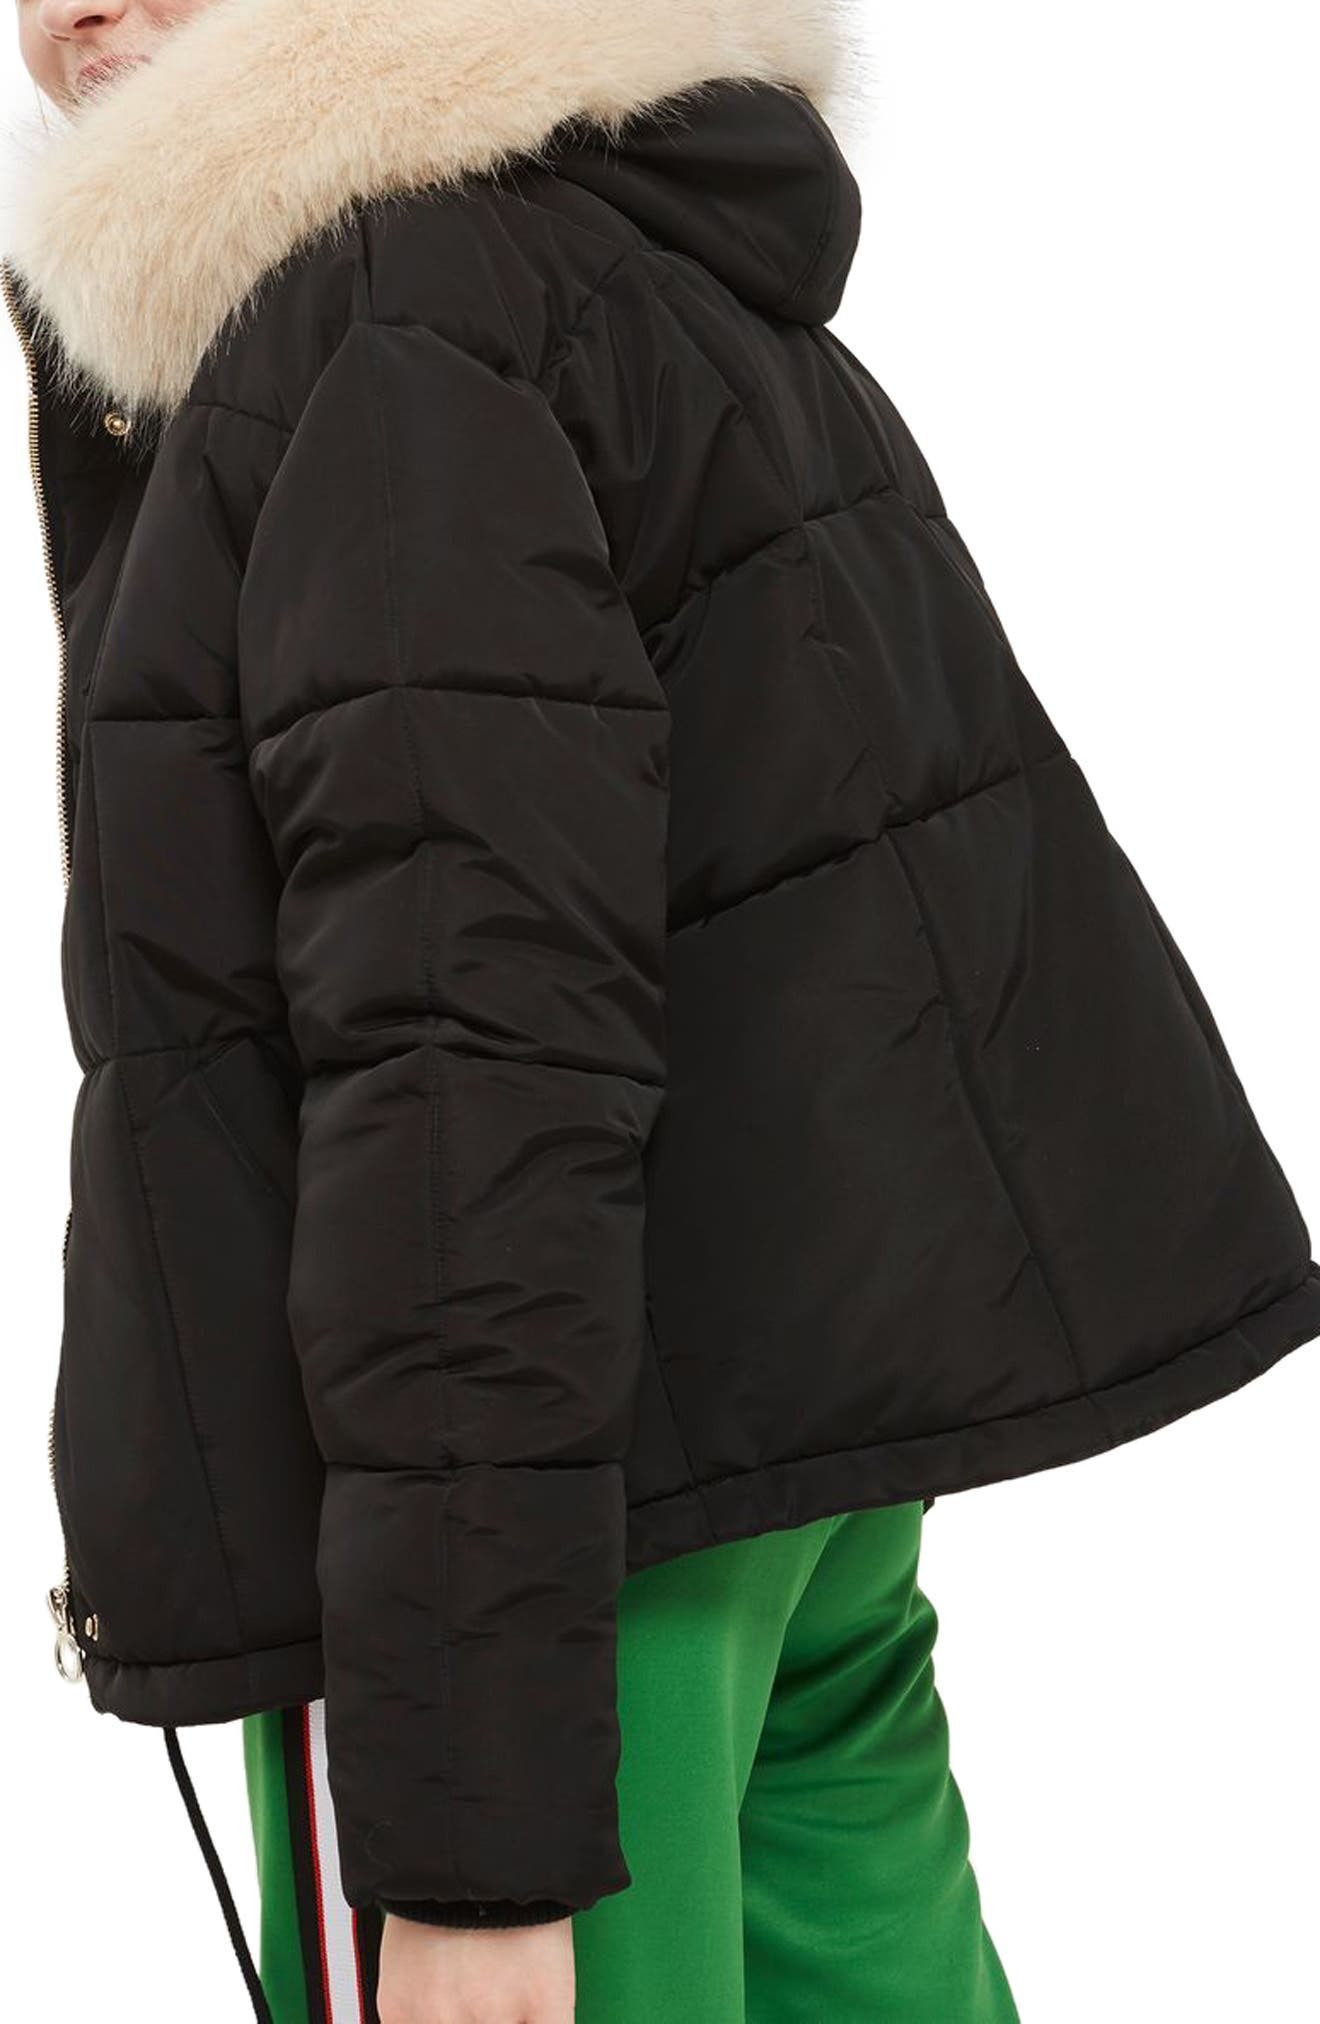 Faux Fur Lined Puffer Jacket,                             Main thumbnail 1, color,                             001